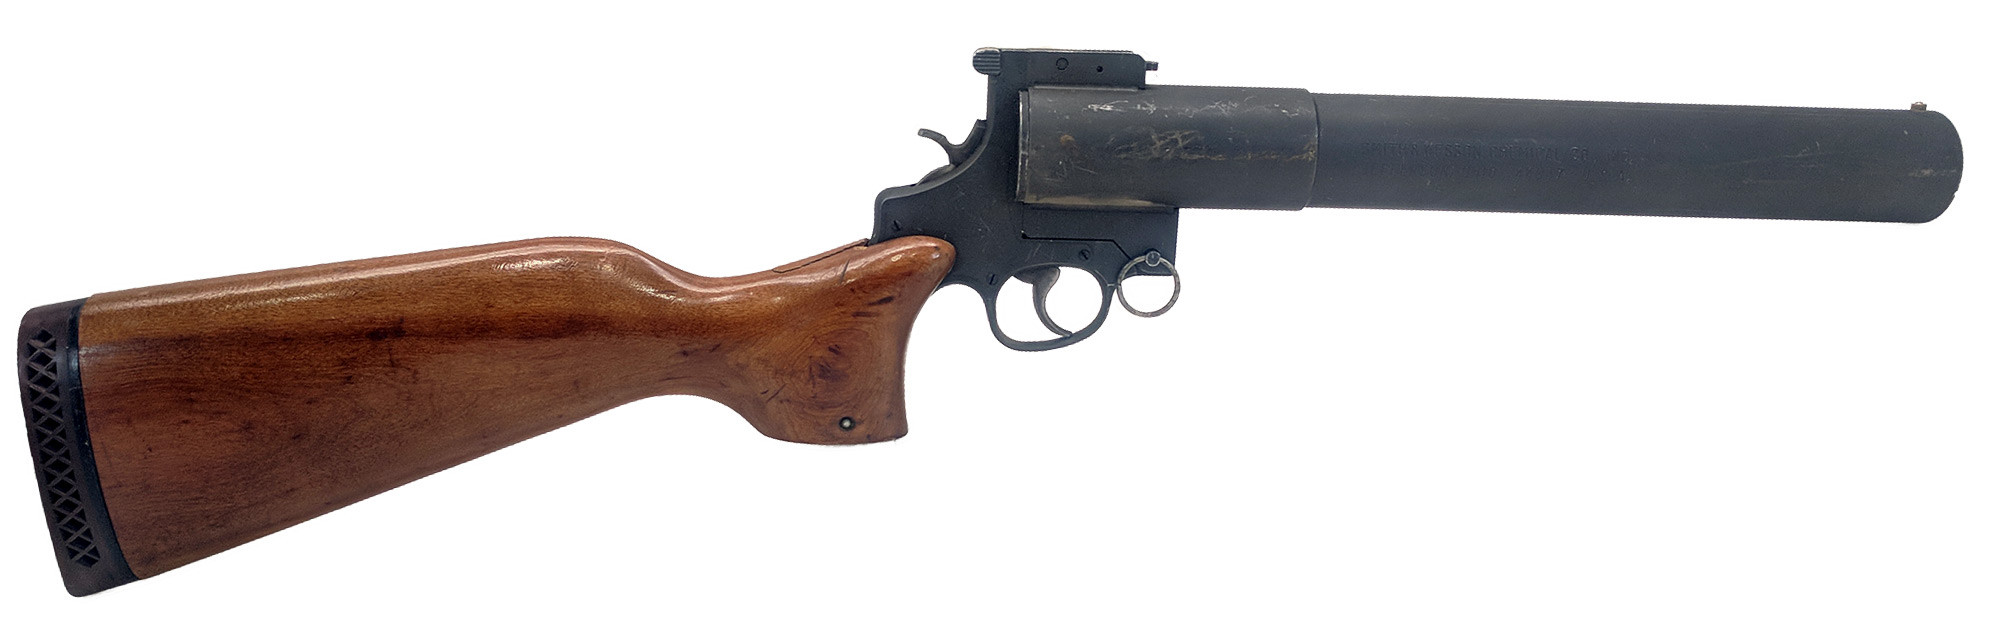 Smith & Wesson Model 276 37mm Gas / Riot Gun, *Very Good, Cracked Stock*